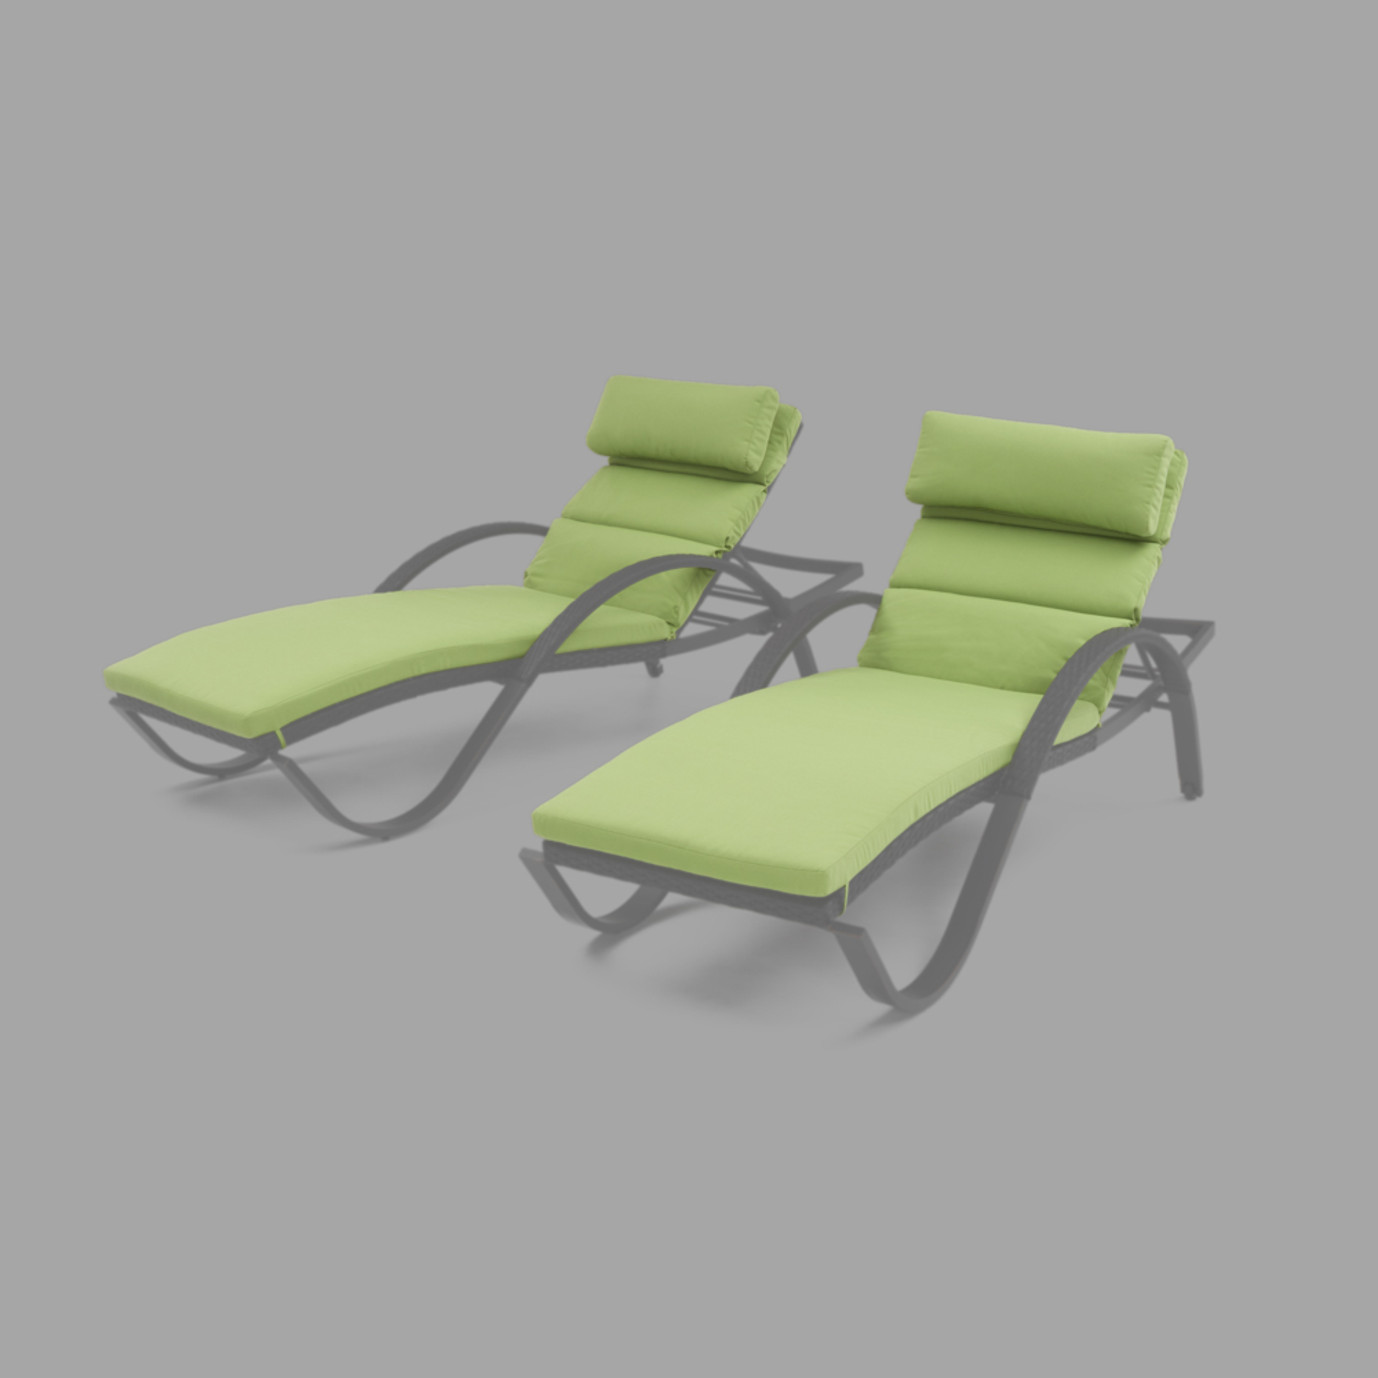 Outdoor Chaise Lounges Cushions